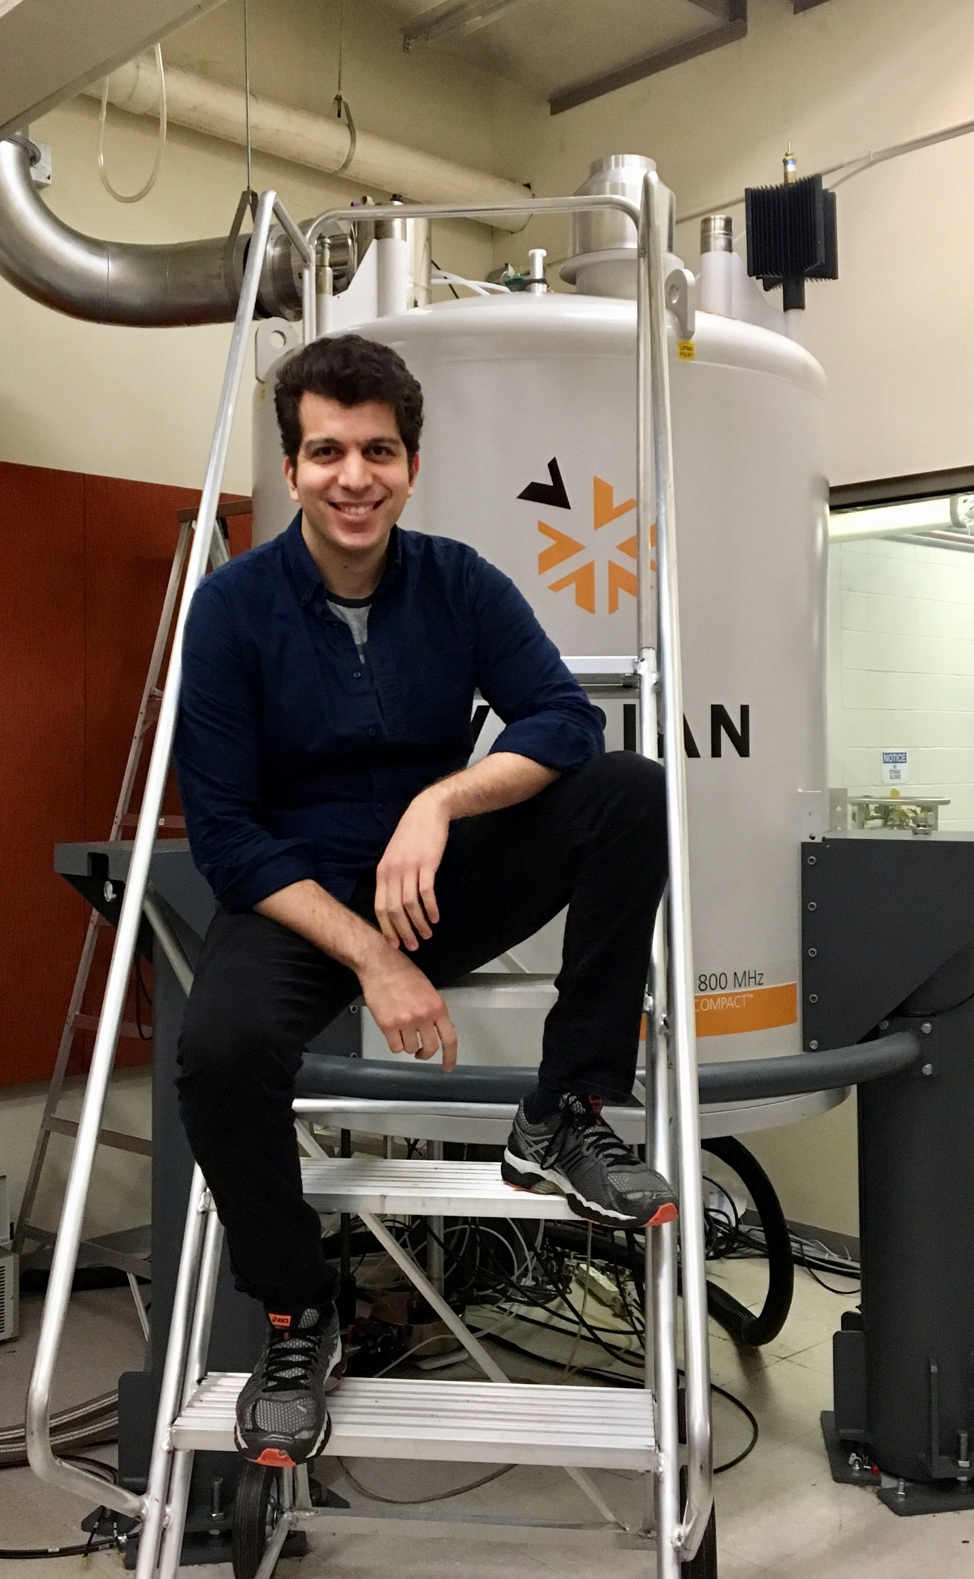 Gianluca Arianna smiling, seated in front of biophysics equipment